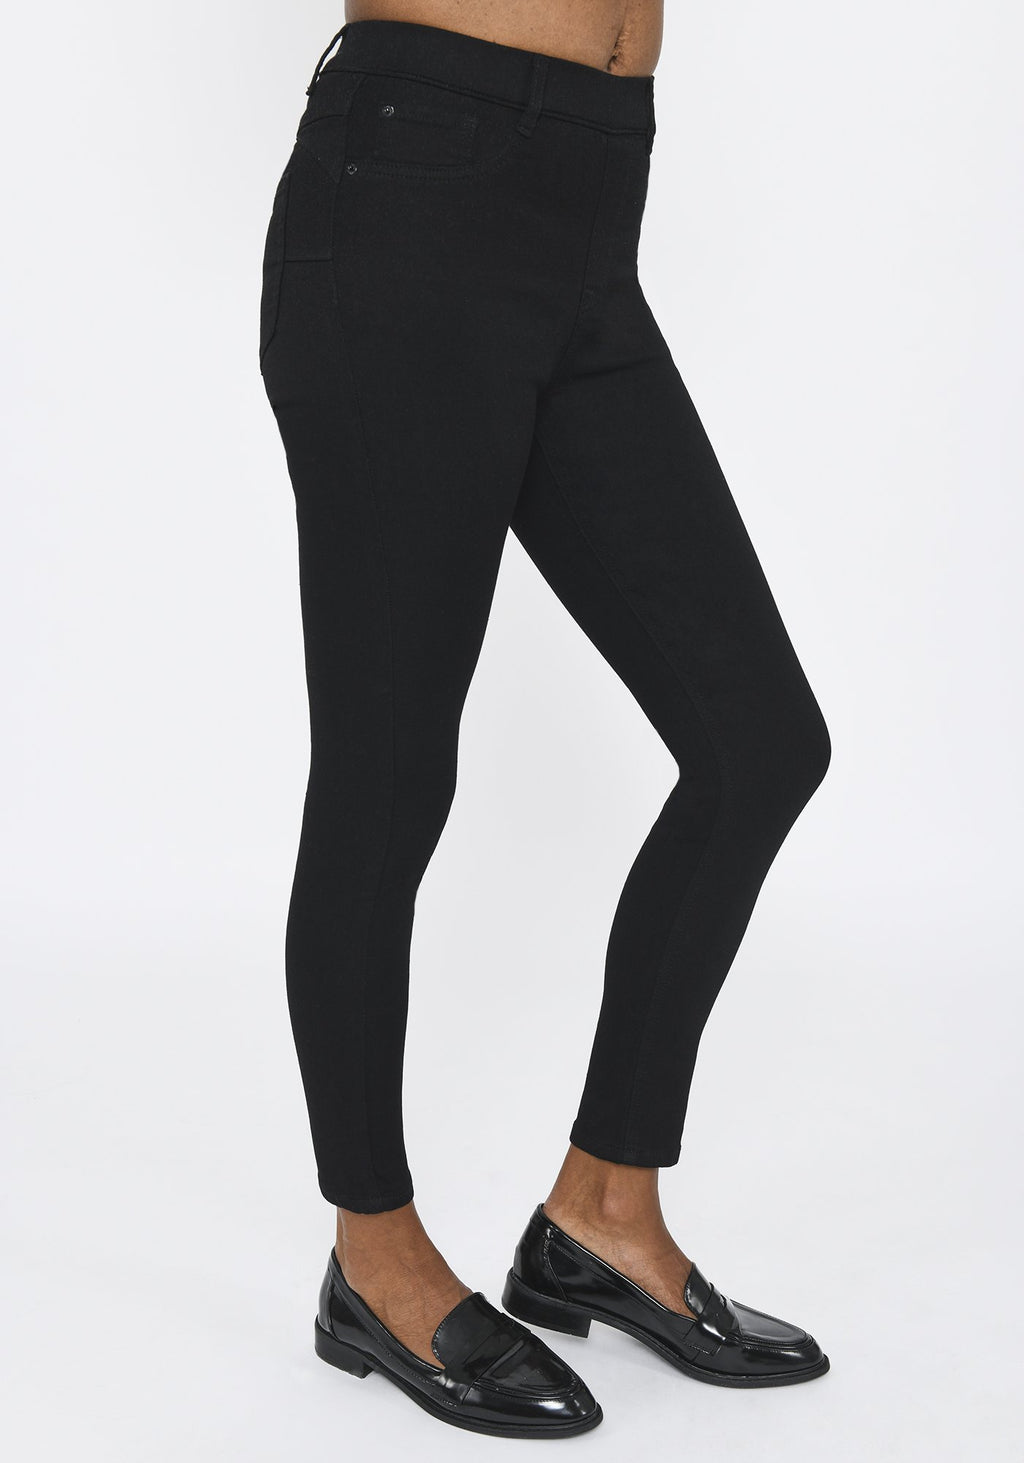 Black Ankle Grazer Jeggings